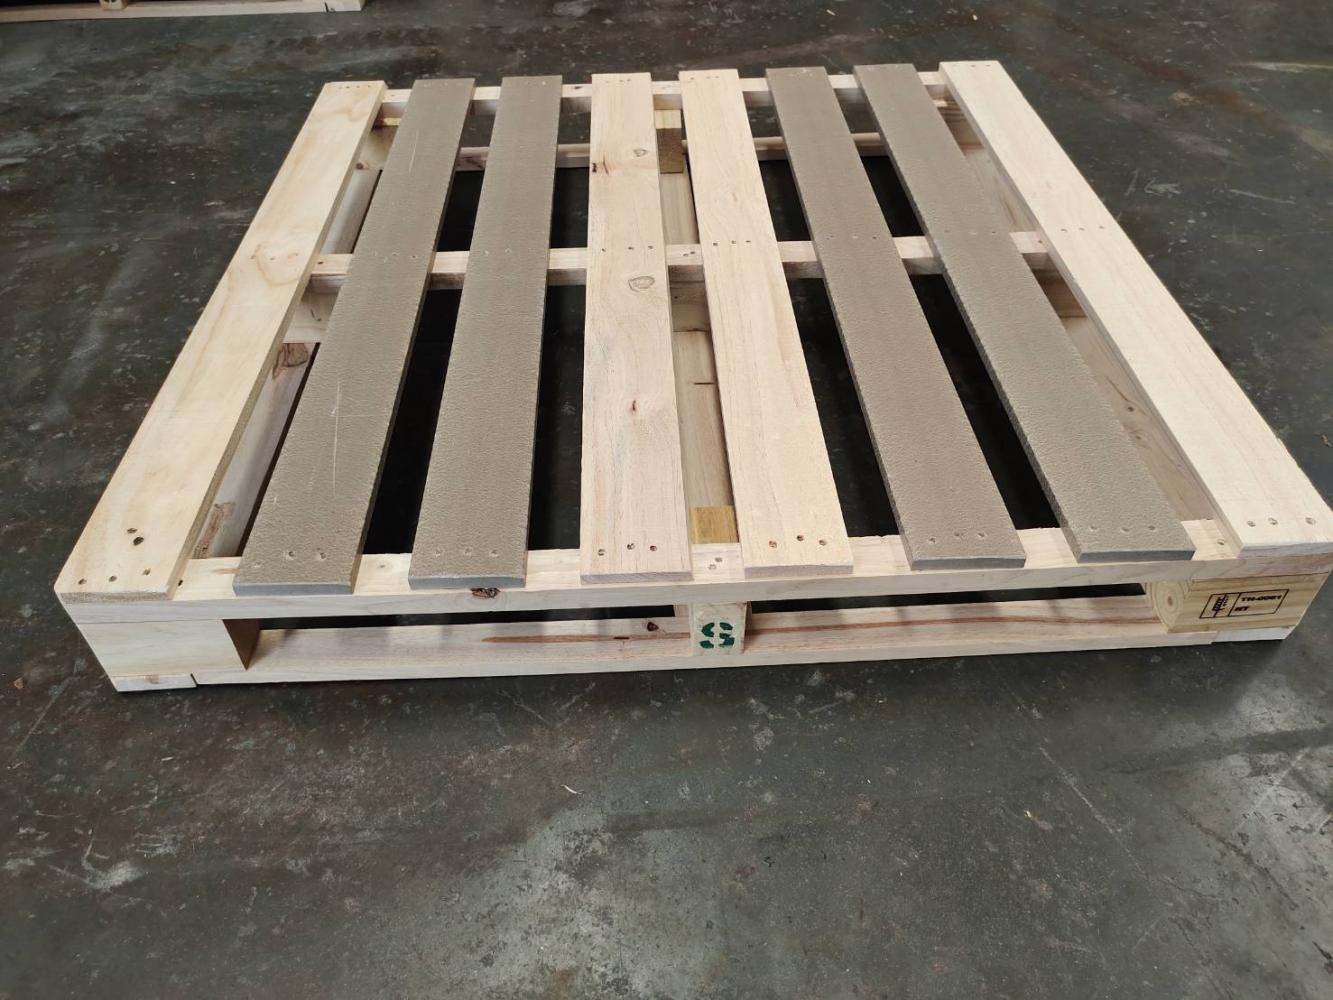 Initiative transforms waste into pallets